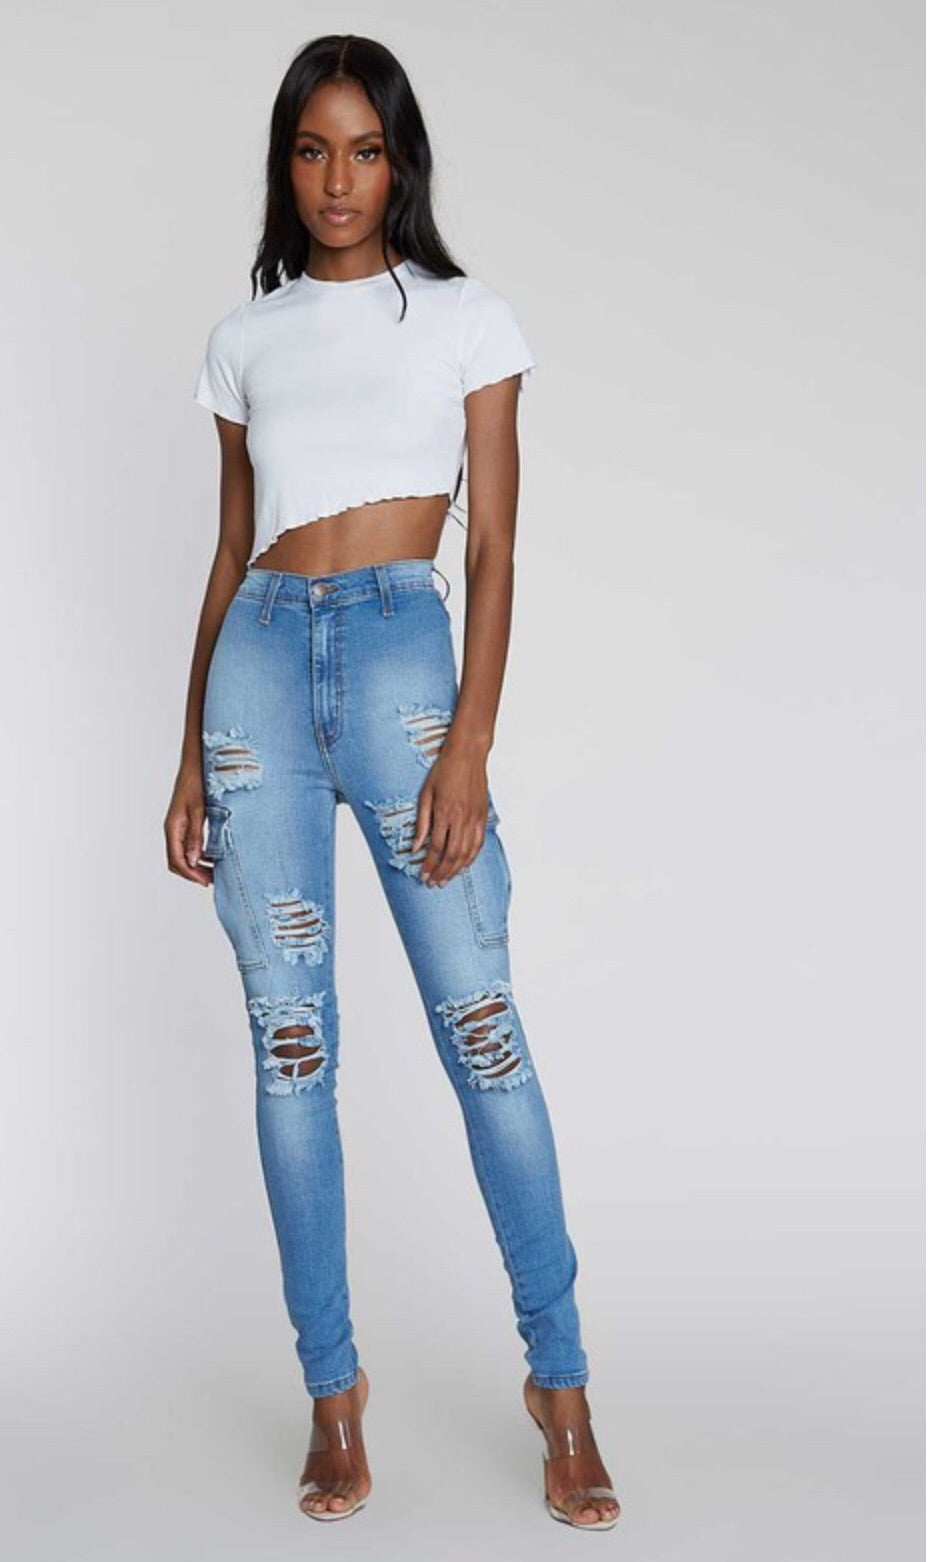 Denim Distressed Jeans (Limited Quantities)